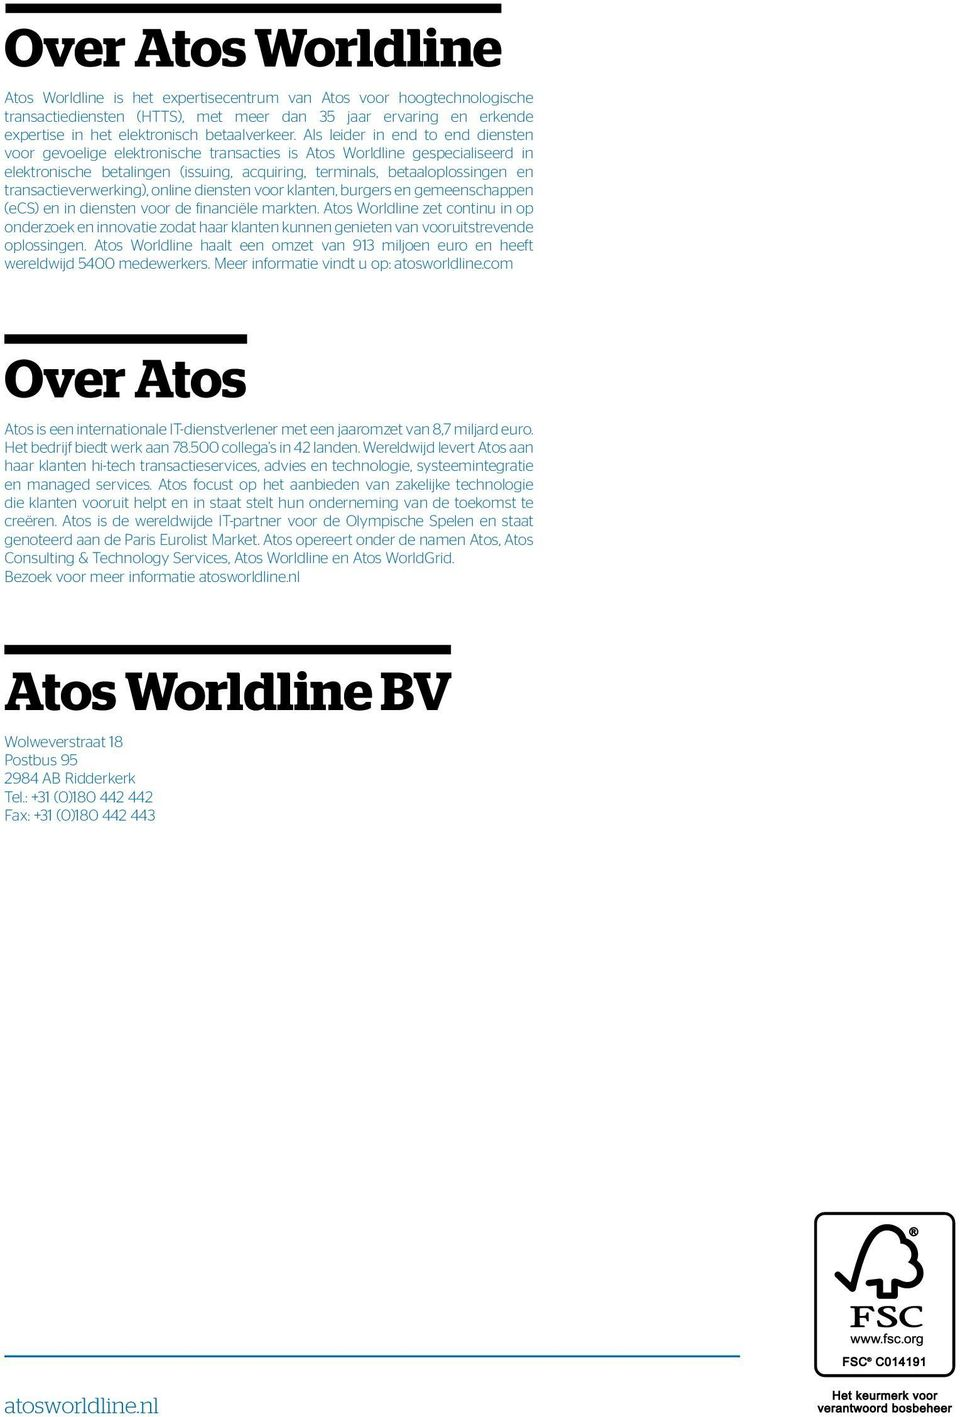 Als leider in end to end diensten voor gevoelige elektronische transacties is Atos Worldline gespecialiseerd in elektronische betalingen (issuing, acquiring, terminals, betaaloplossingen en